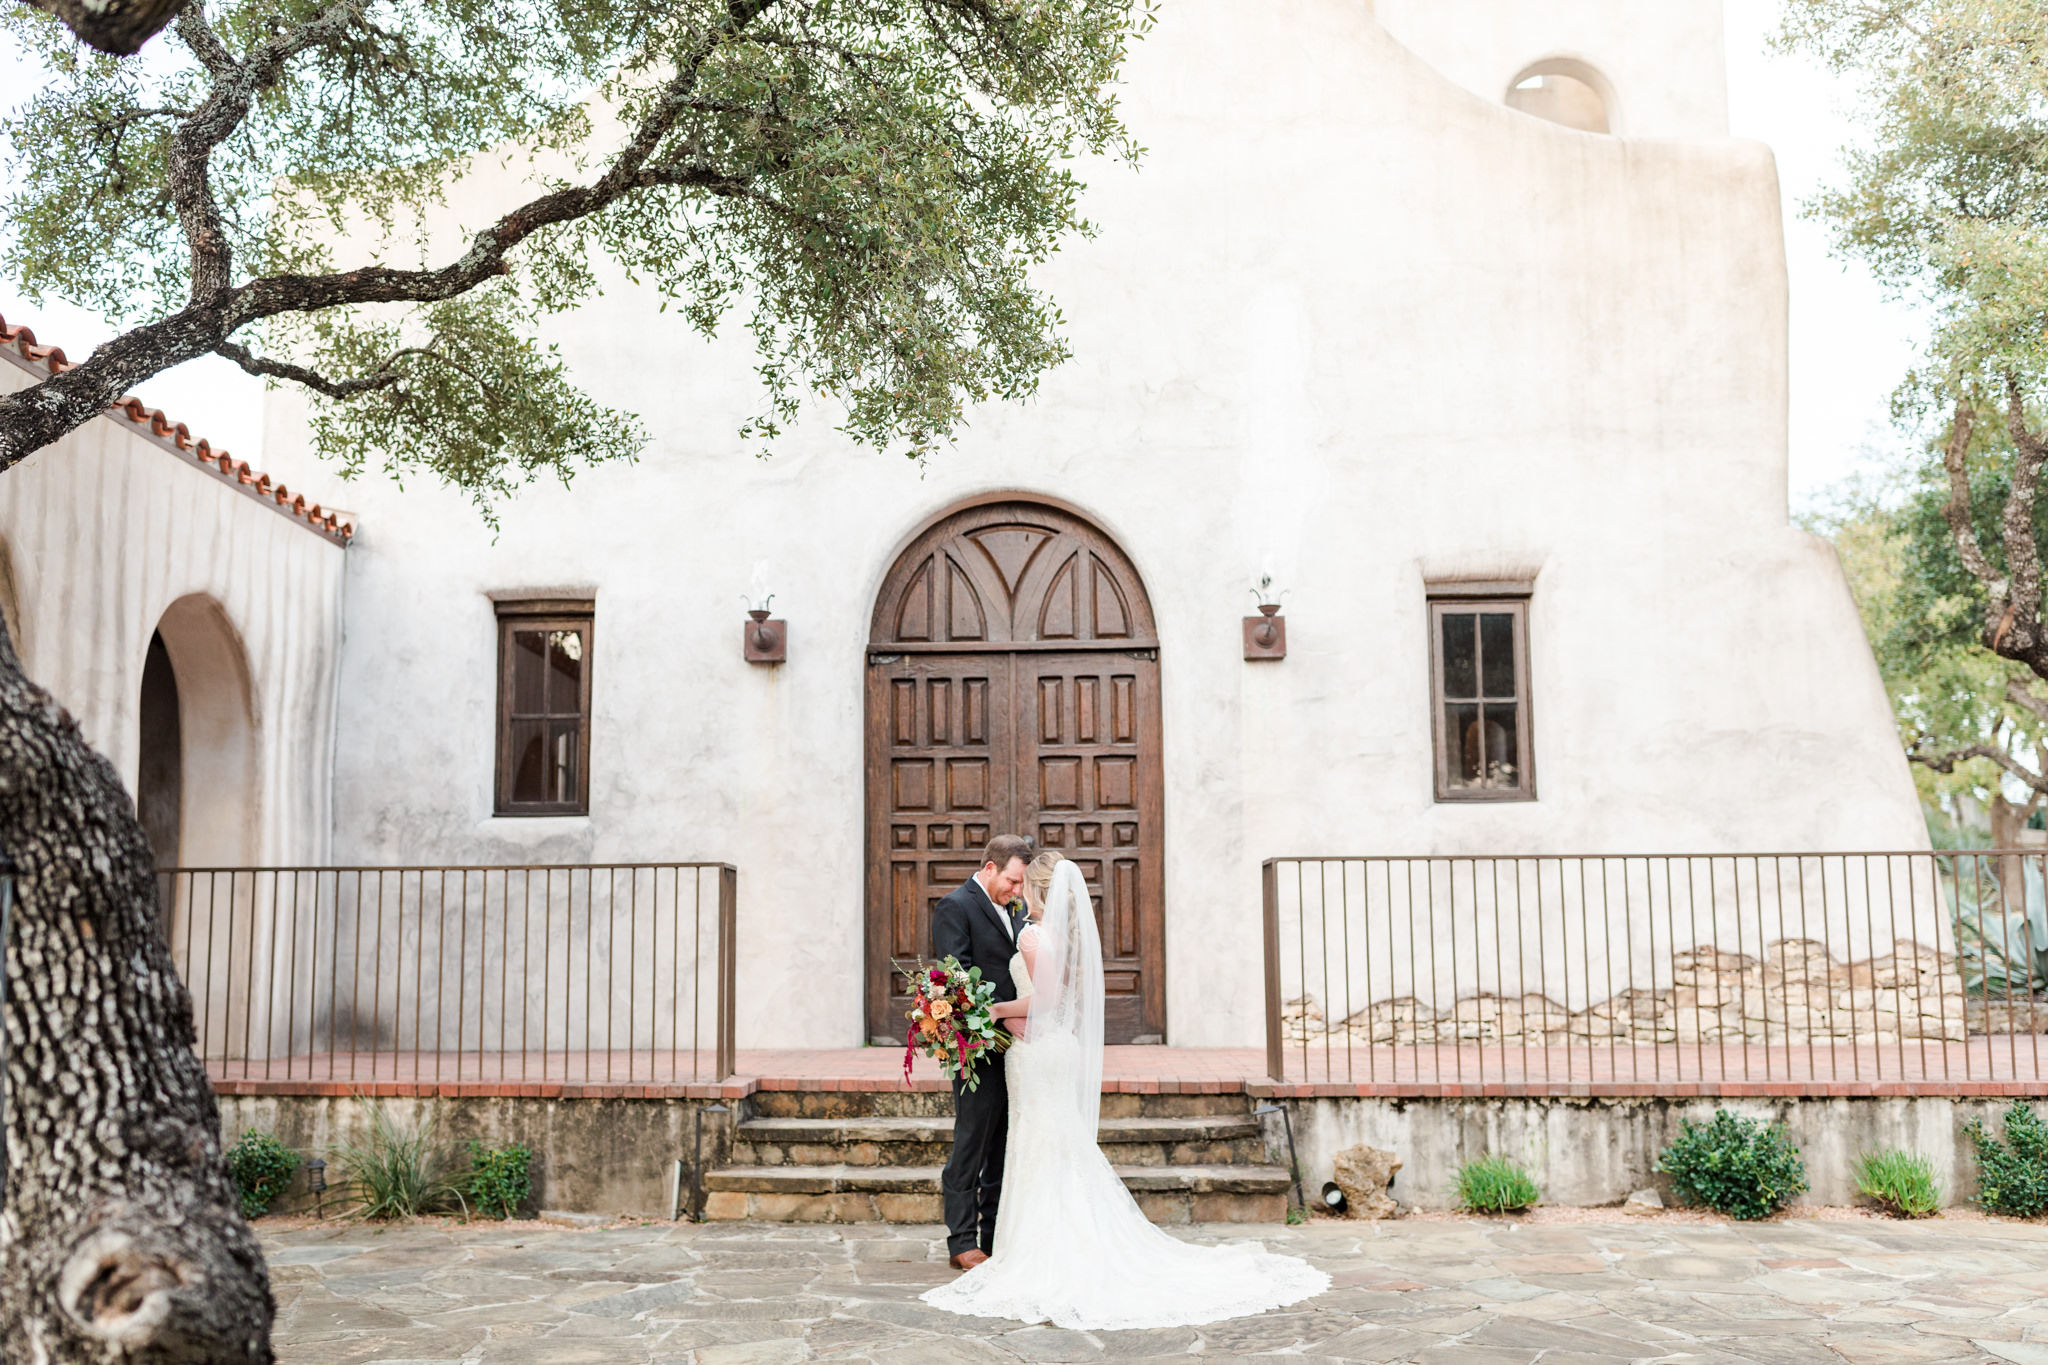 Wedding-At-Lost-Mission-Barger-Dawn-Eliz